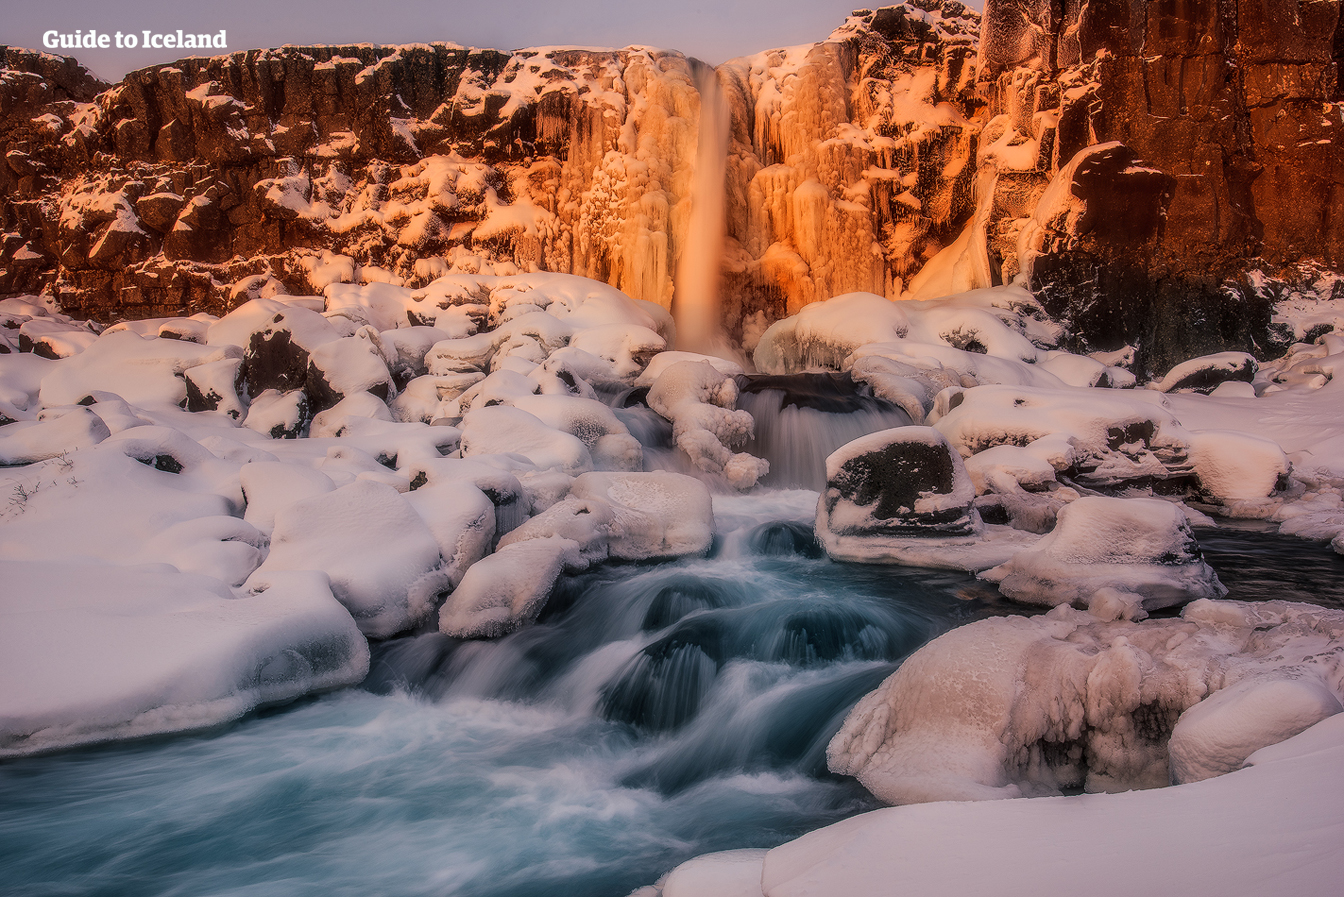 A waterfall on the Golden Circle photographed in Winter.